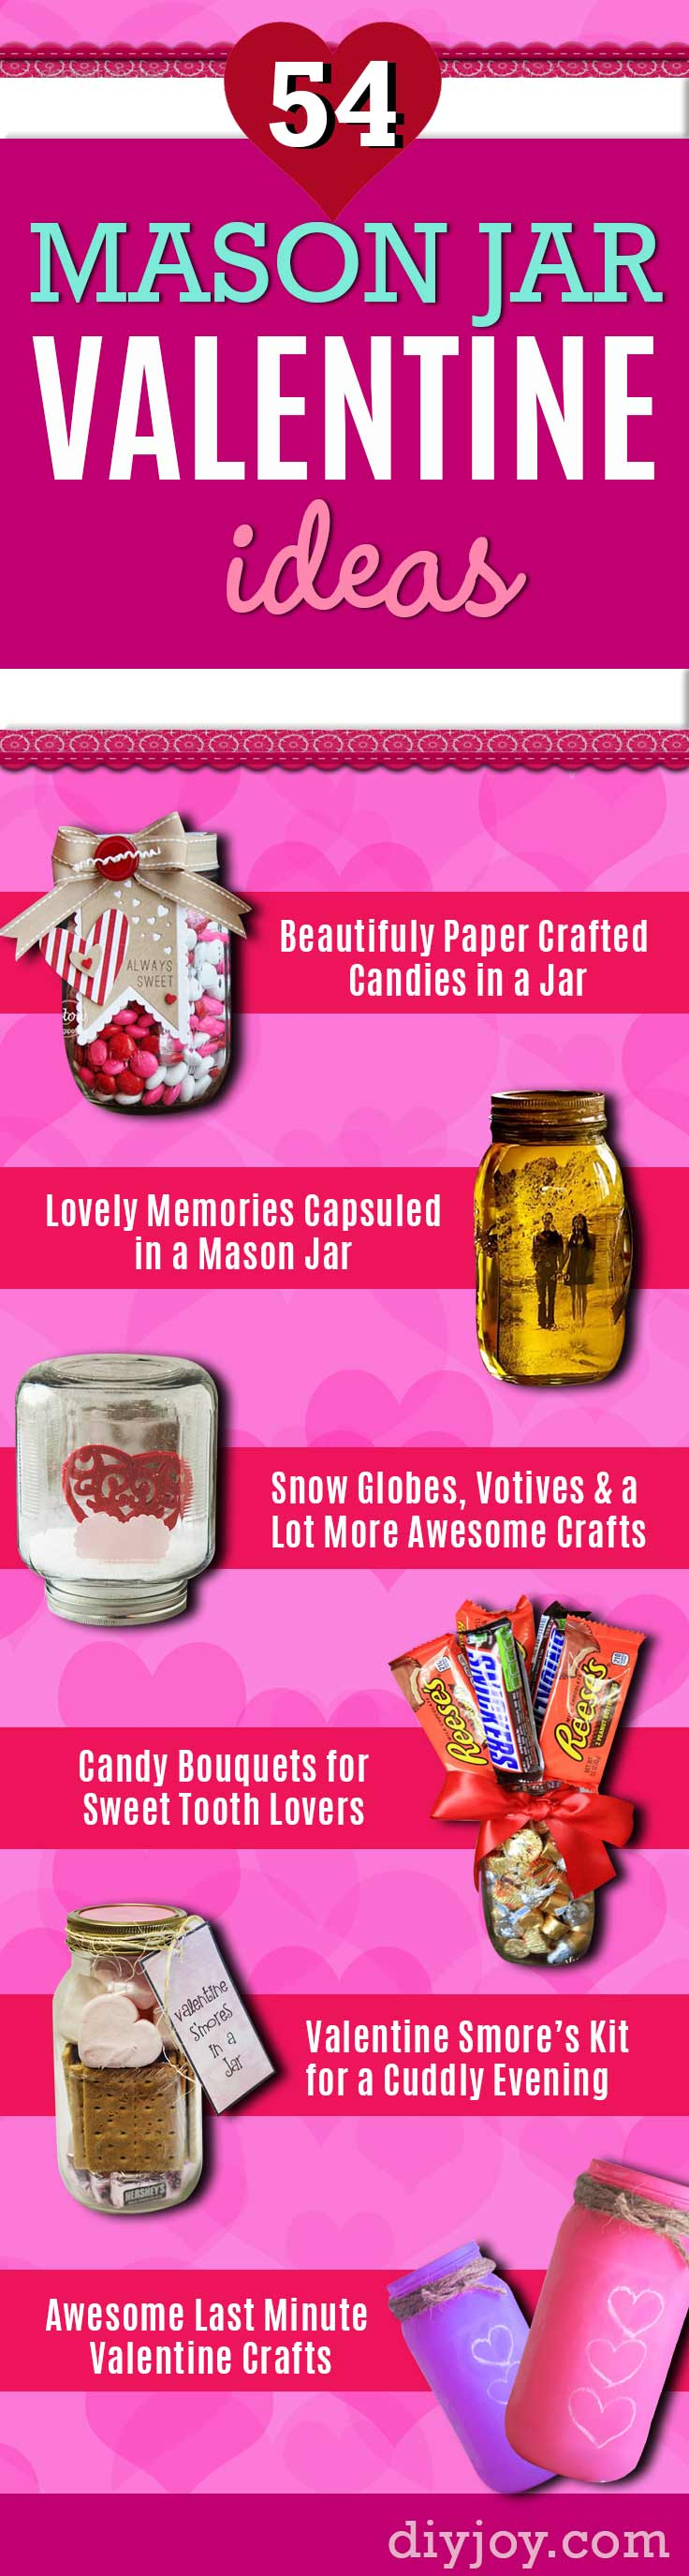 Mason Jar Valentine Gifts - Easy Mason Jar Valentines - Cute Valentines Day Gifts - Easy Mason Jars Crafts for Valentines Day